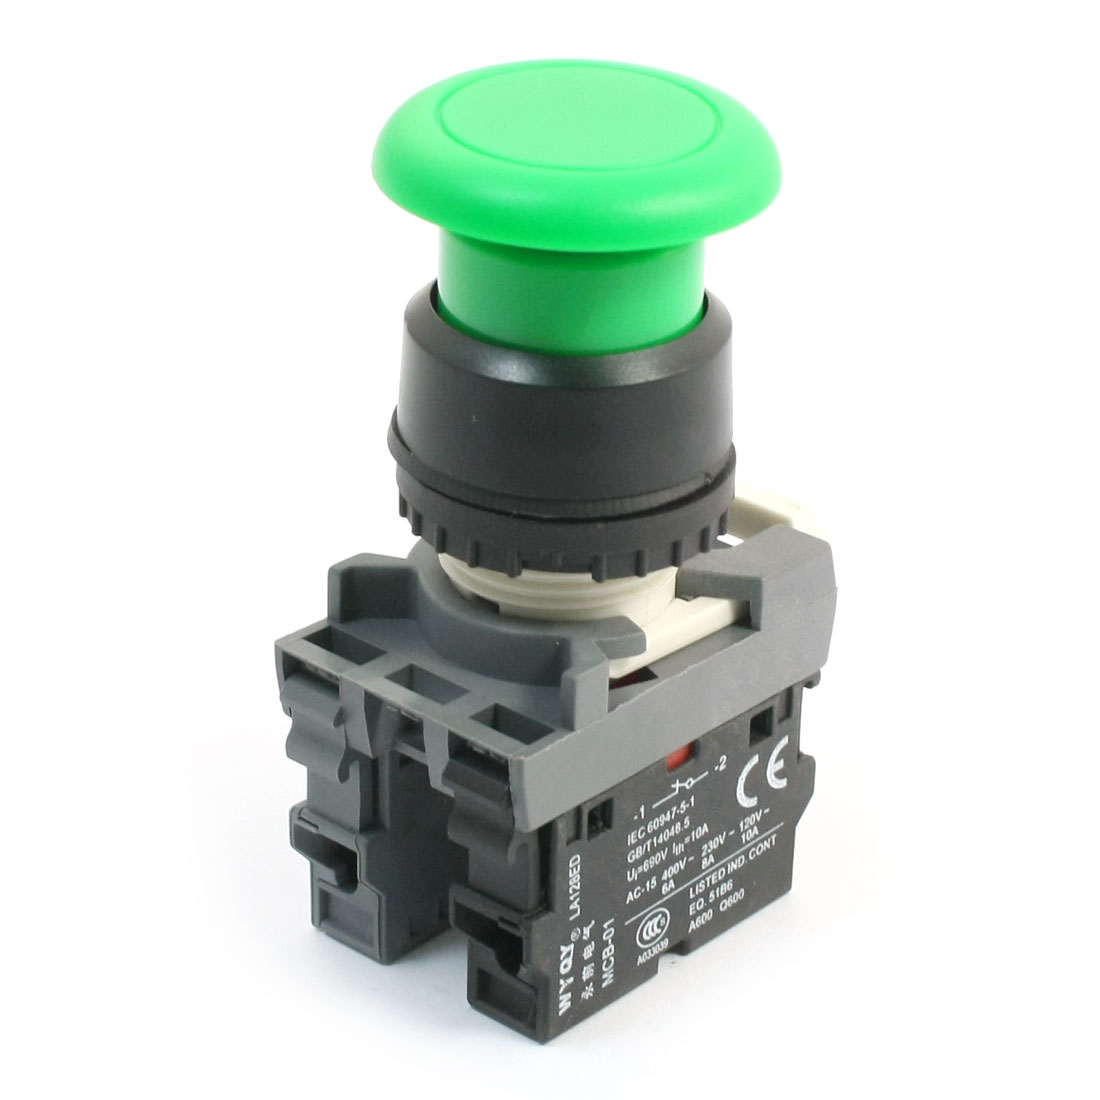 690V 10A 2NO DPST Momentary Green Mushroom Head Push Button Pushbutton Switch